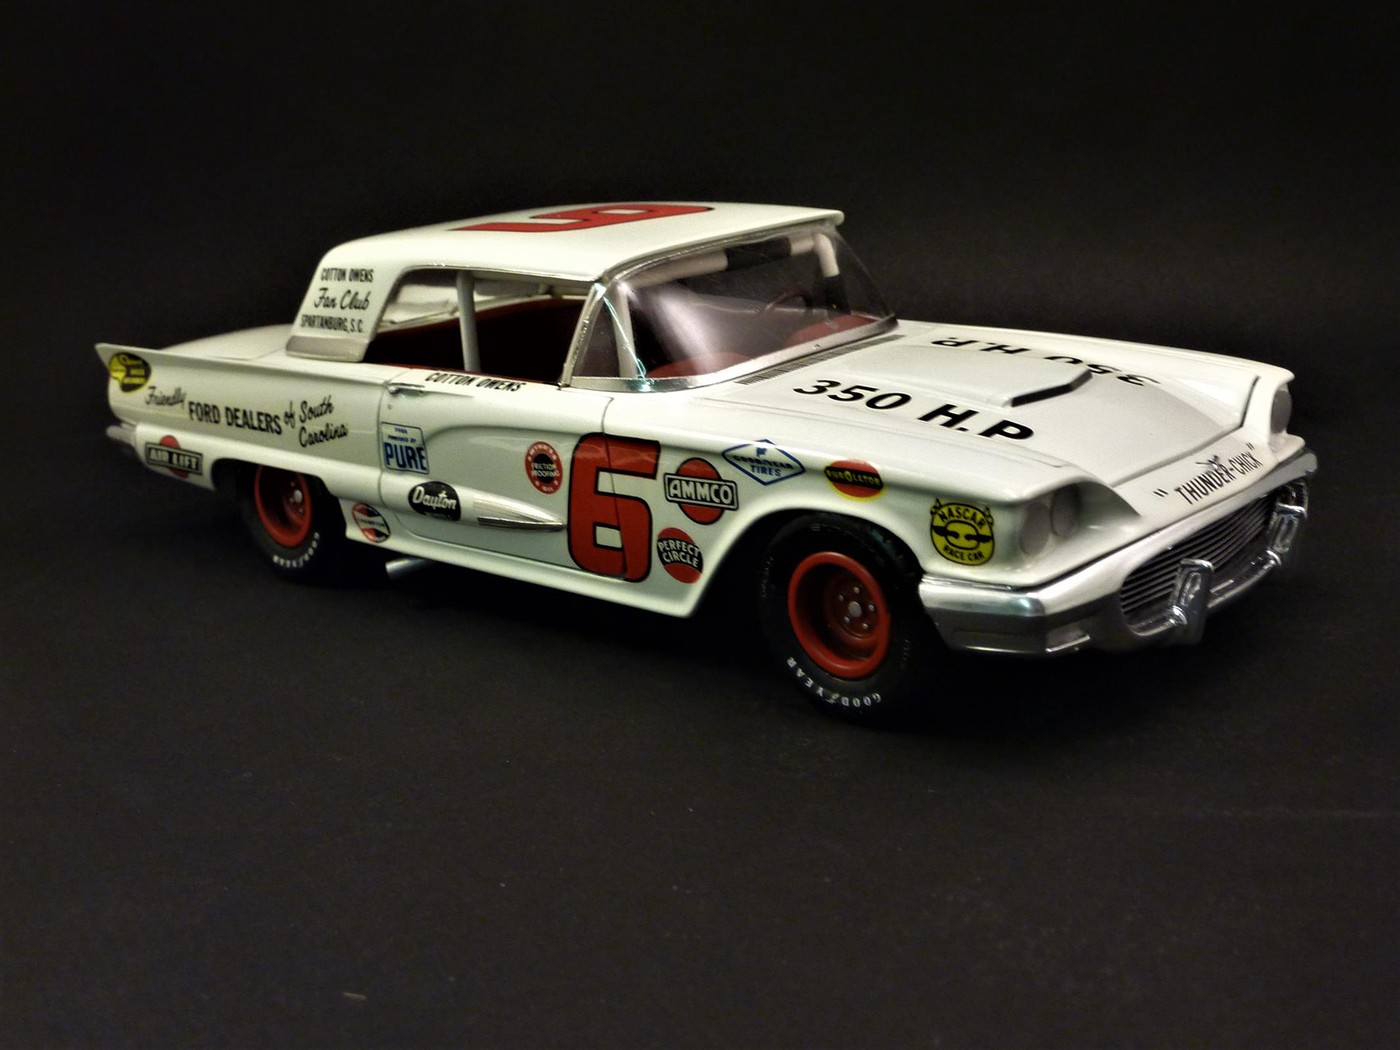 Ford Thunderbird 59 Nascar Cotton Owens terminée - Page 2 Photo16-vi